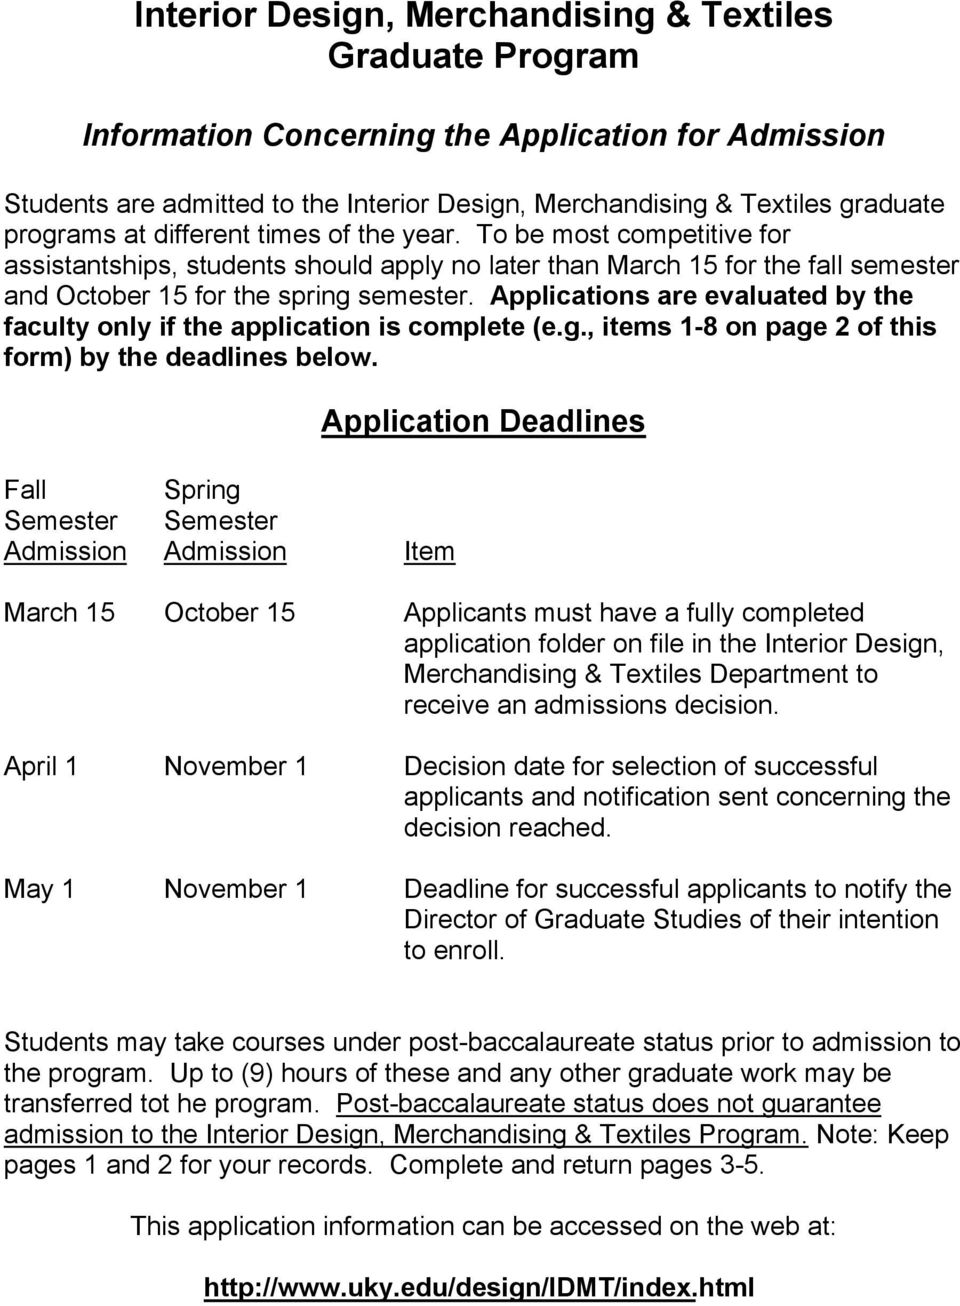 Applications are evaluated by the faculty only if the application is complete (e.g., items 1-8 on page 2 of this form) by the deadlines below.